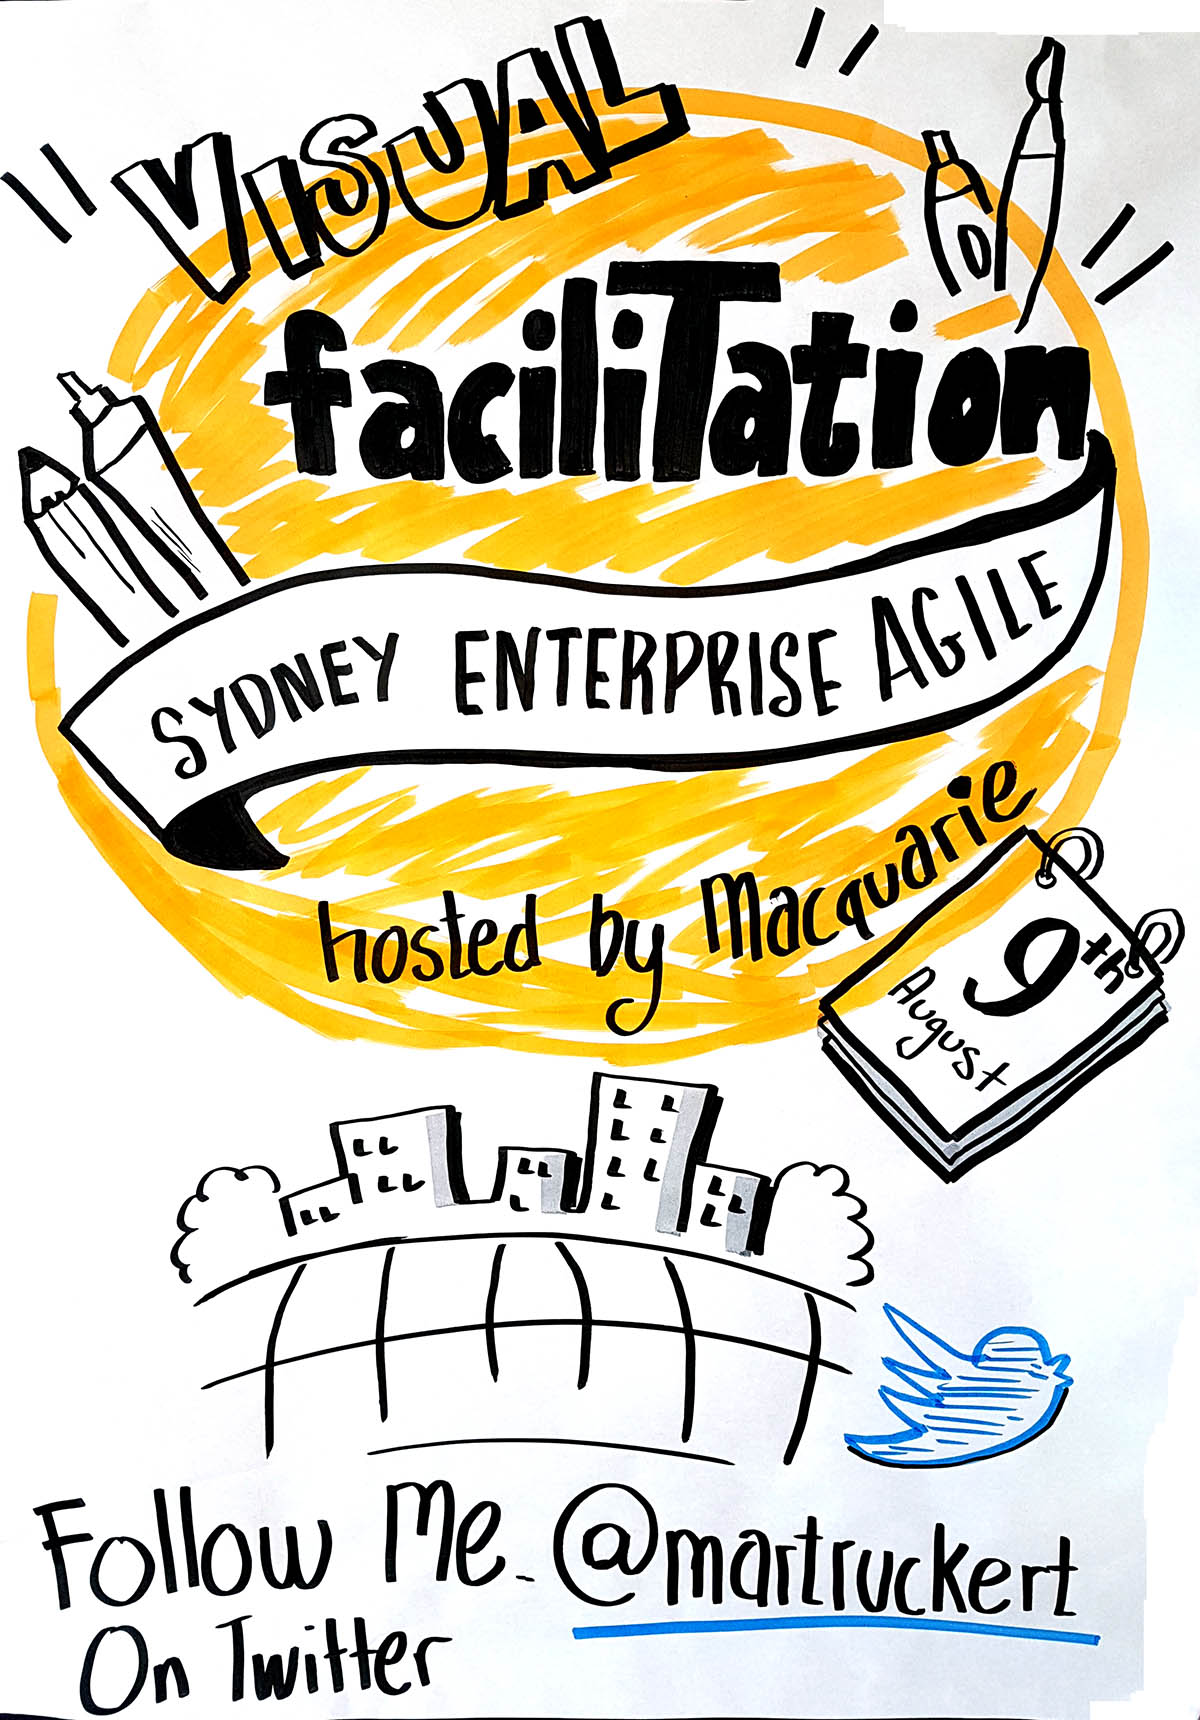 Agile Coach Sydney how to make contextual visuals based on teamwork, themes and